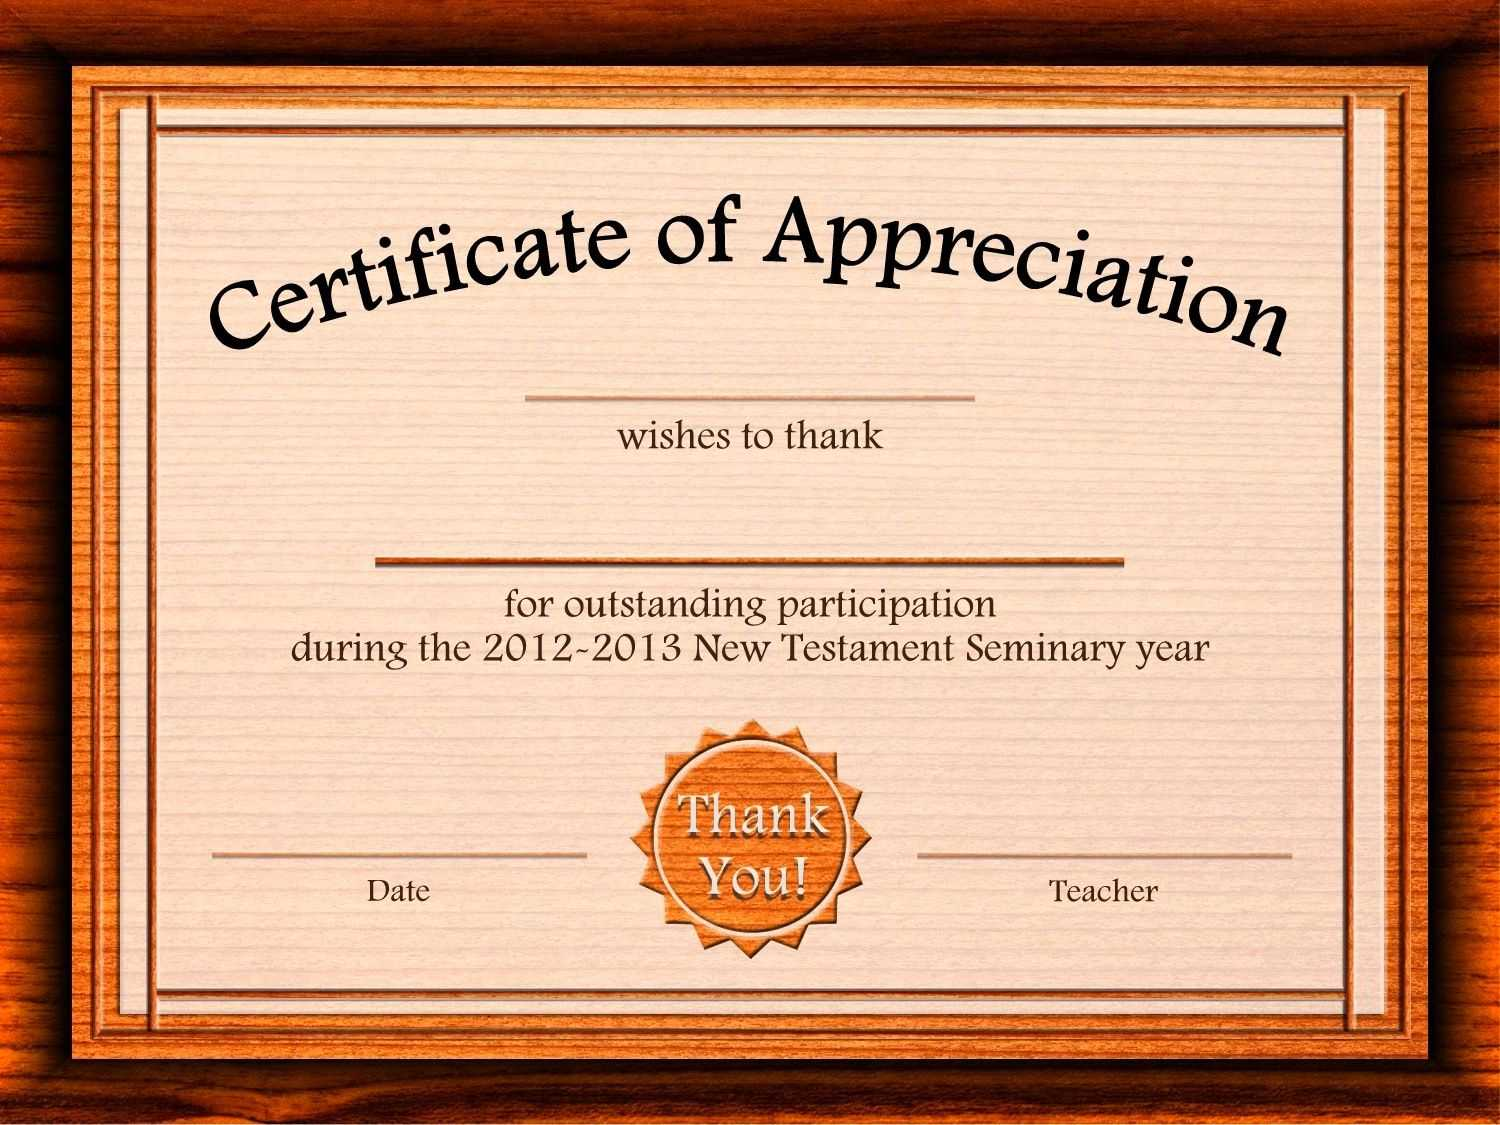 Free Appreciation Certificate Templates Supplier Contract within Professional Award Certificate Template